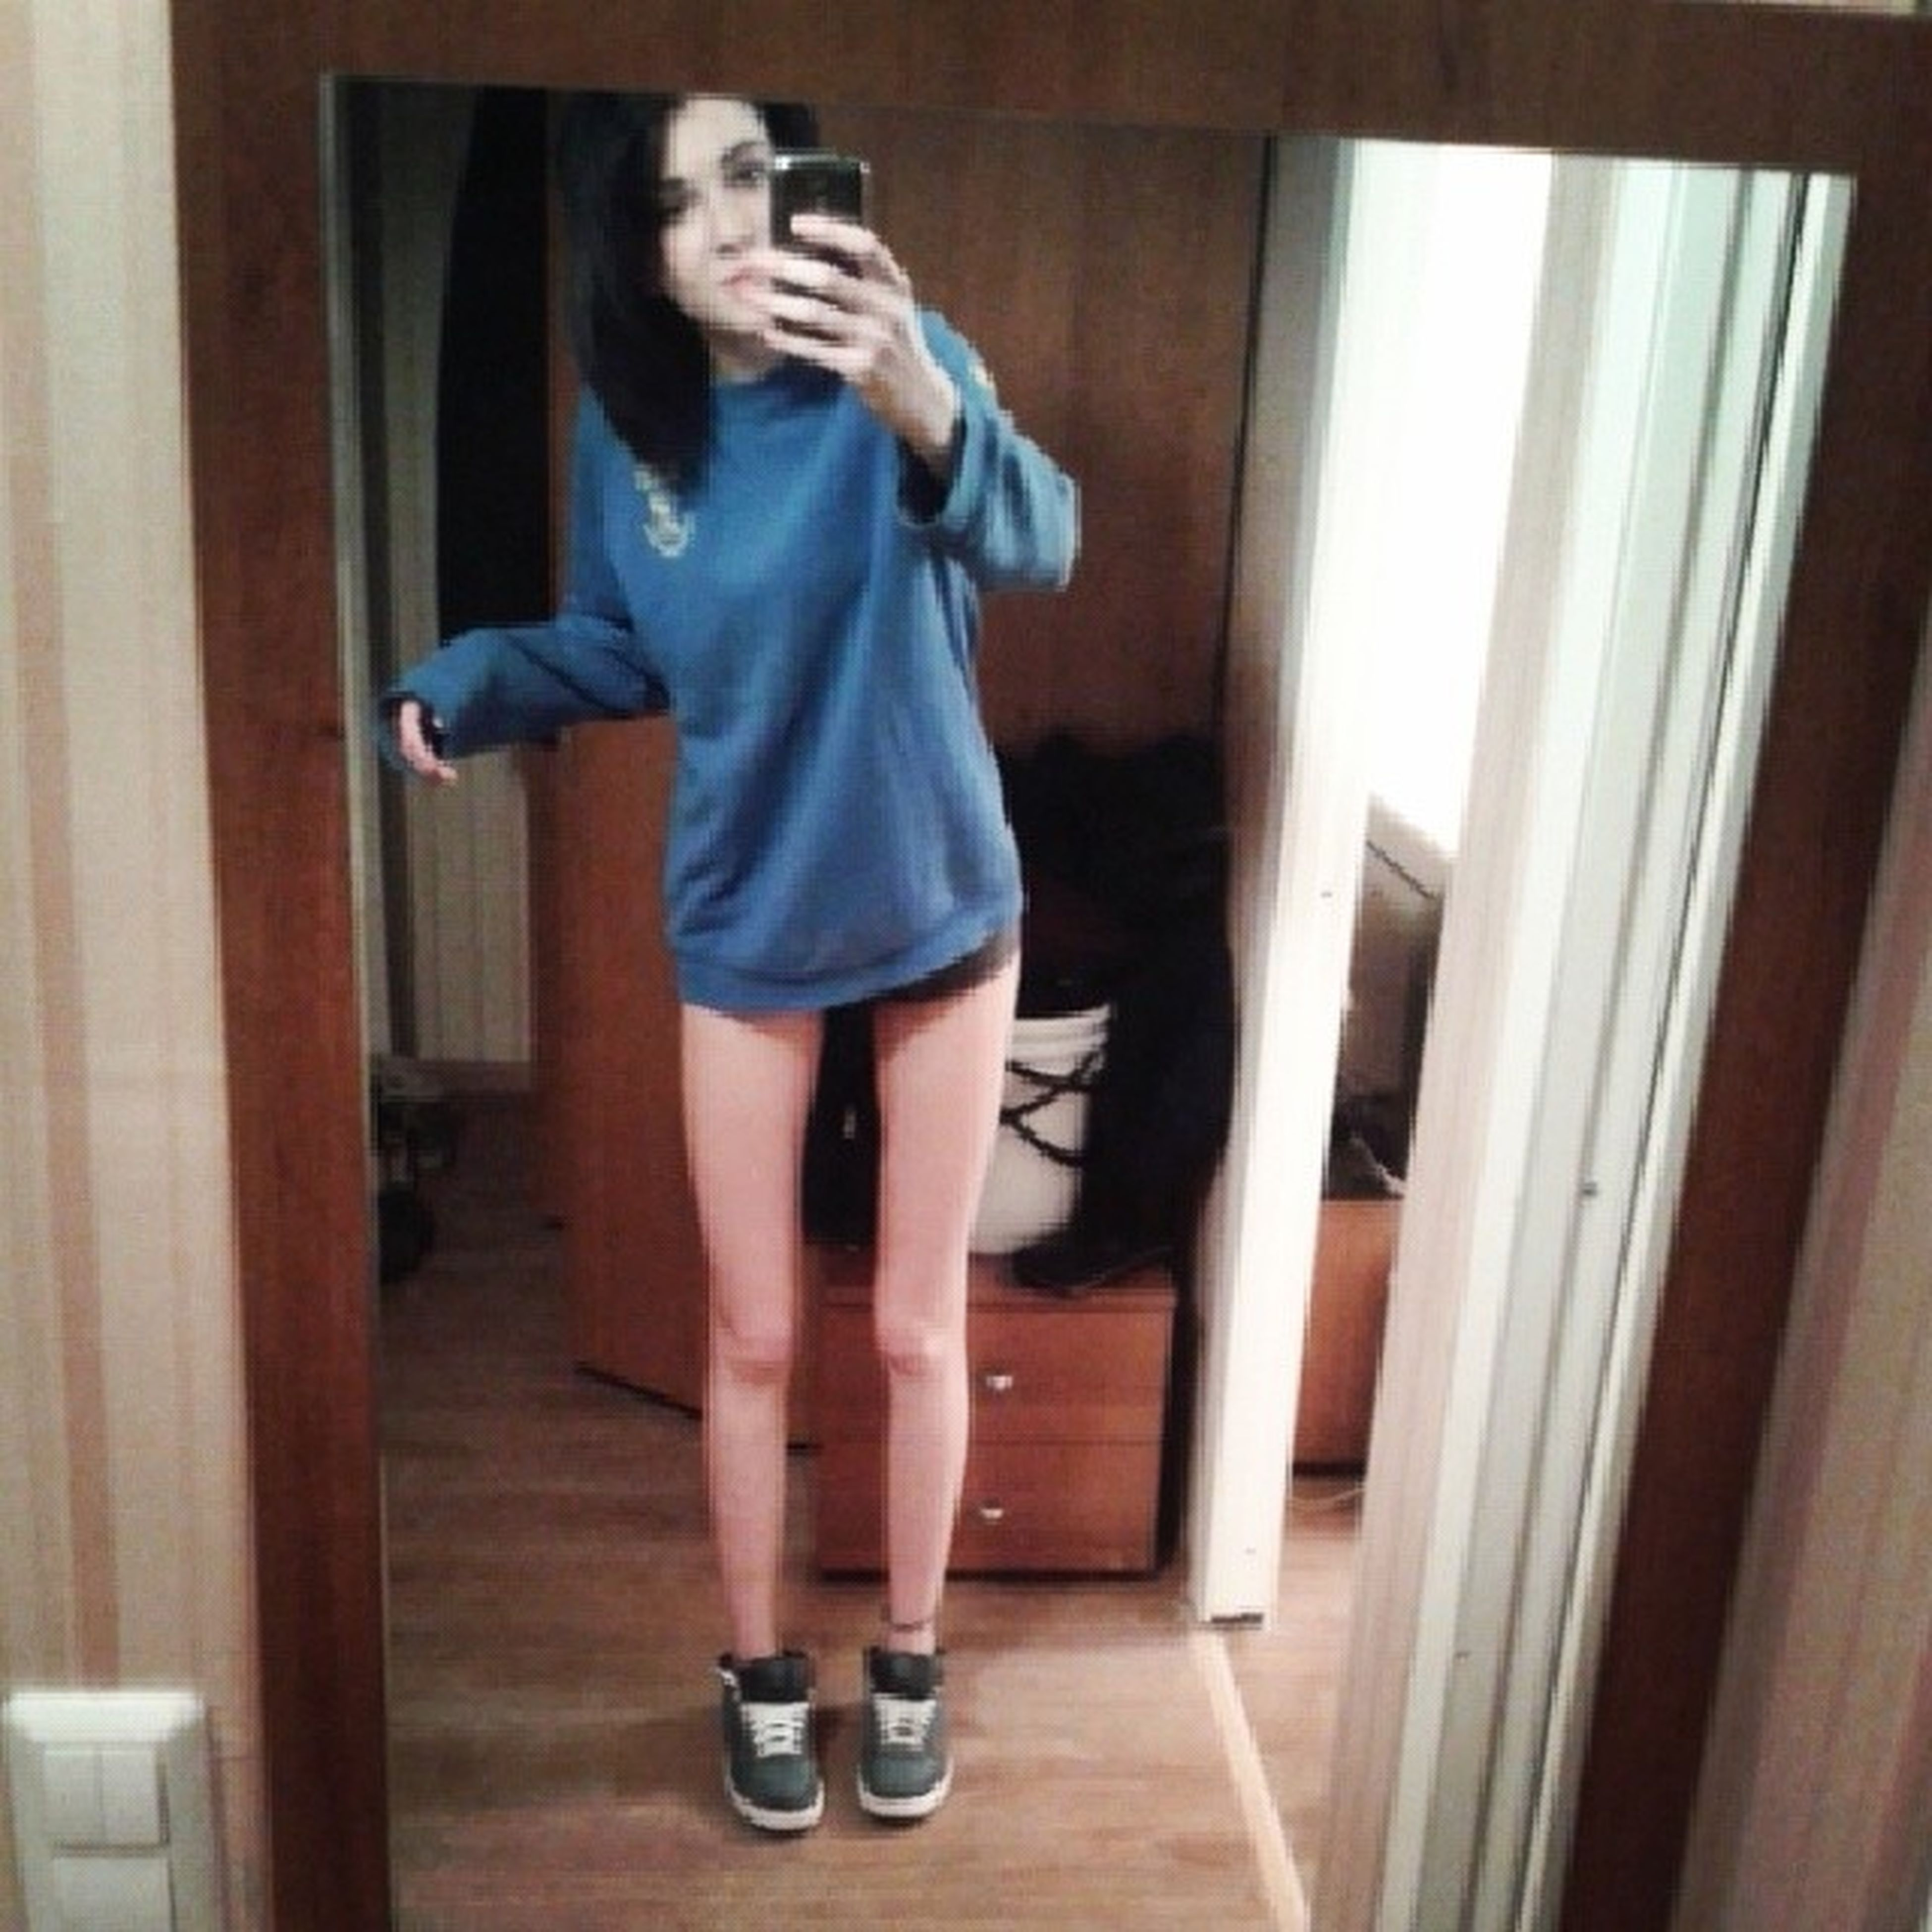 full length, casual clothing, indoors, lifestyles, person, young adult, leisure activity, standing, front view, young women, door, side view, three quarter length, home interior, holding, shorts, childhood